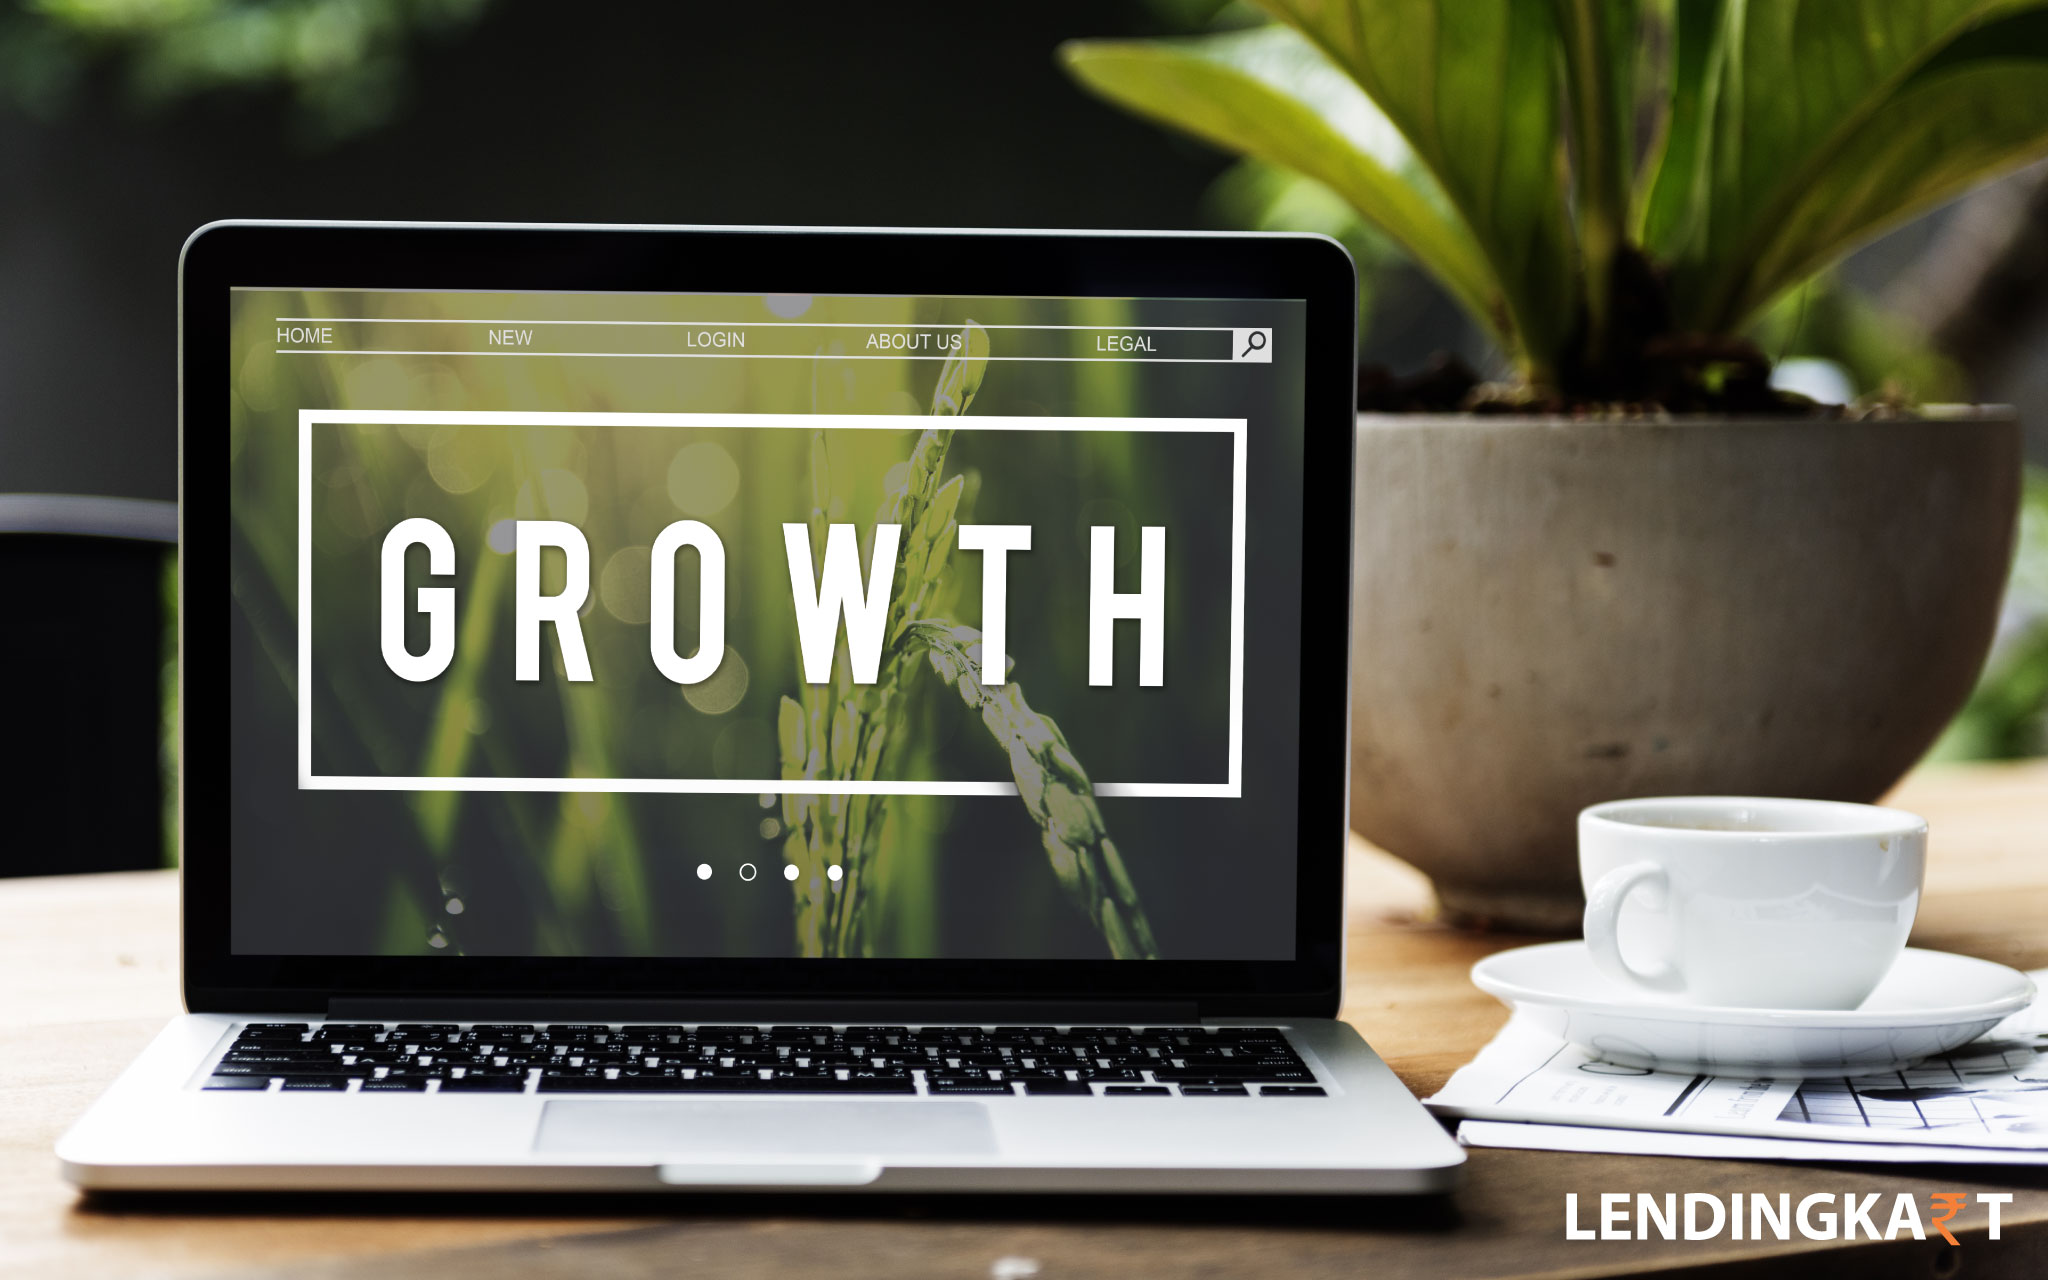 Growing your business online